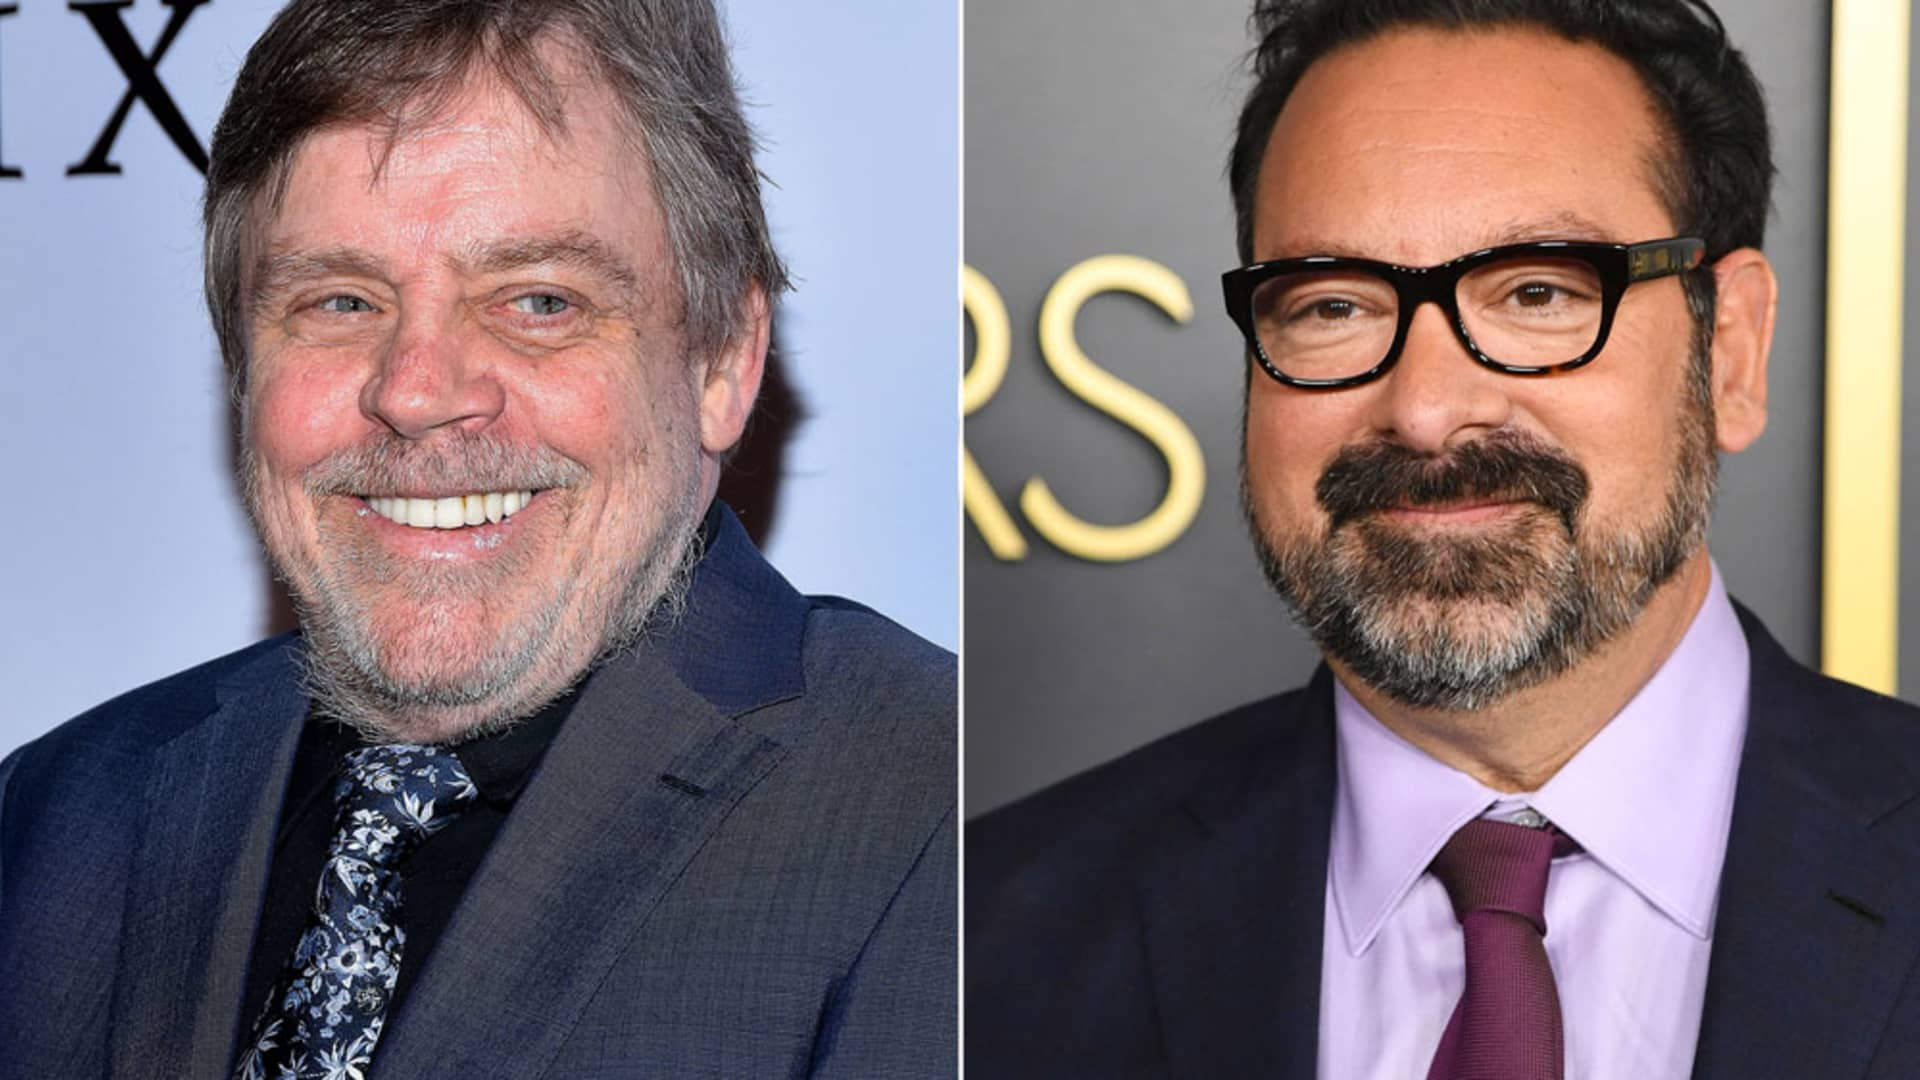 Mark Hamill, left, and James Mangold